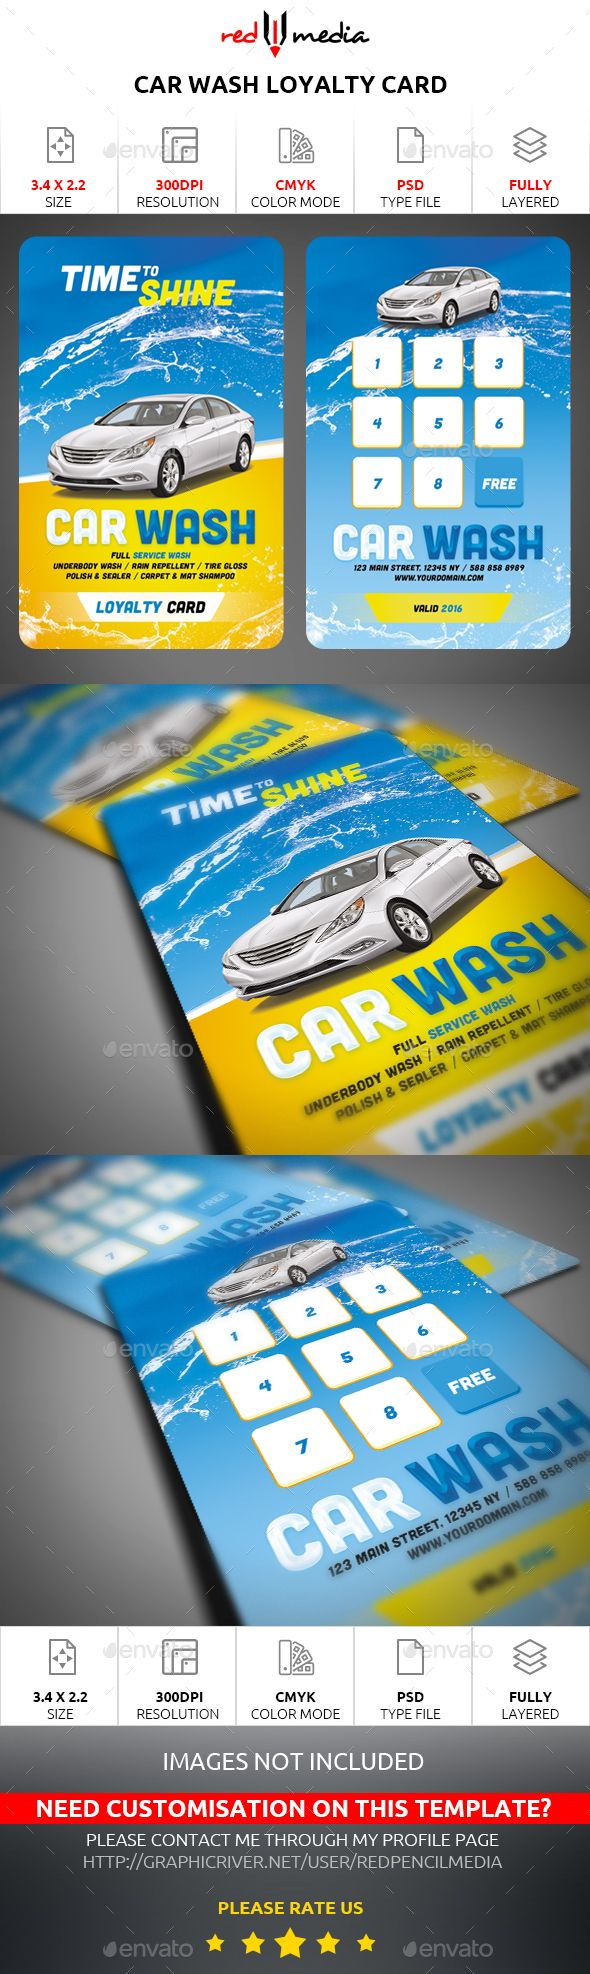 Car Wash Loyalty Card - Loyalty Cards Cards & Invites Template PSD. Download here: http://graphicriver.net/item/car-wash-loyalty-card/16703949?s_rank=110&ref=yinkira